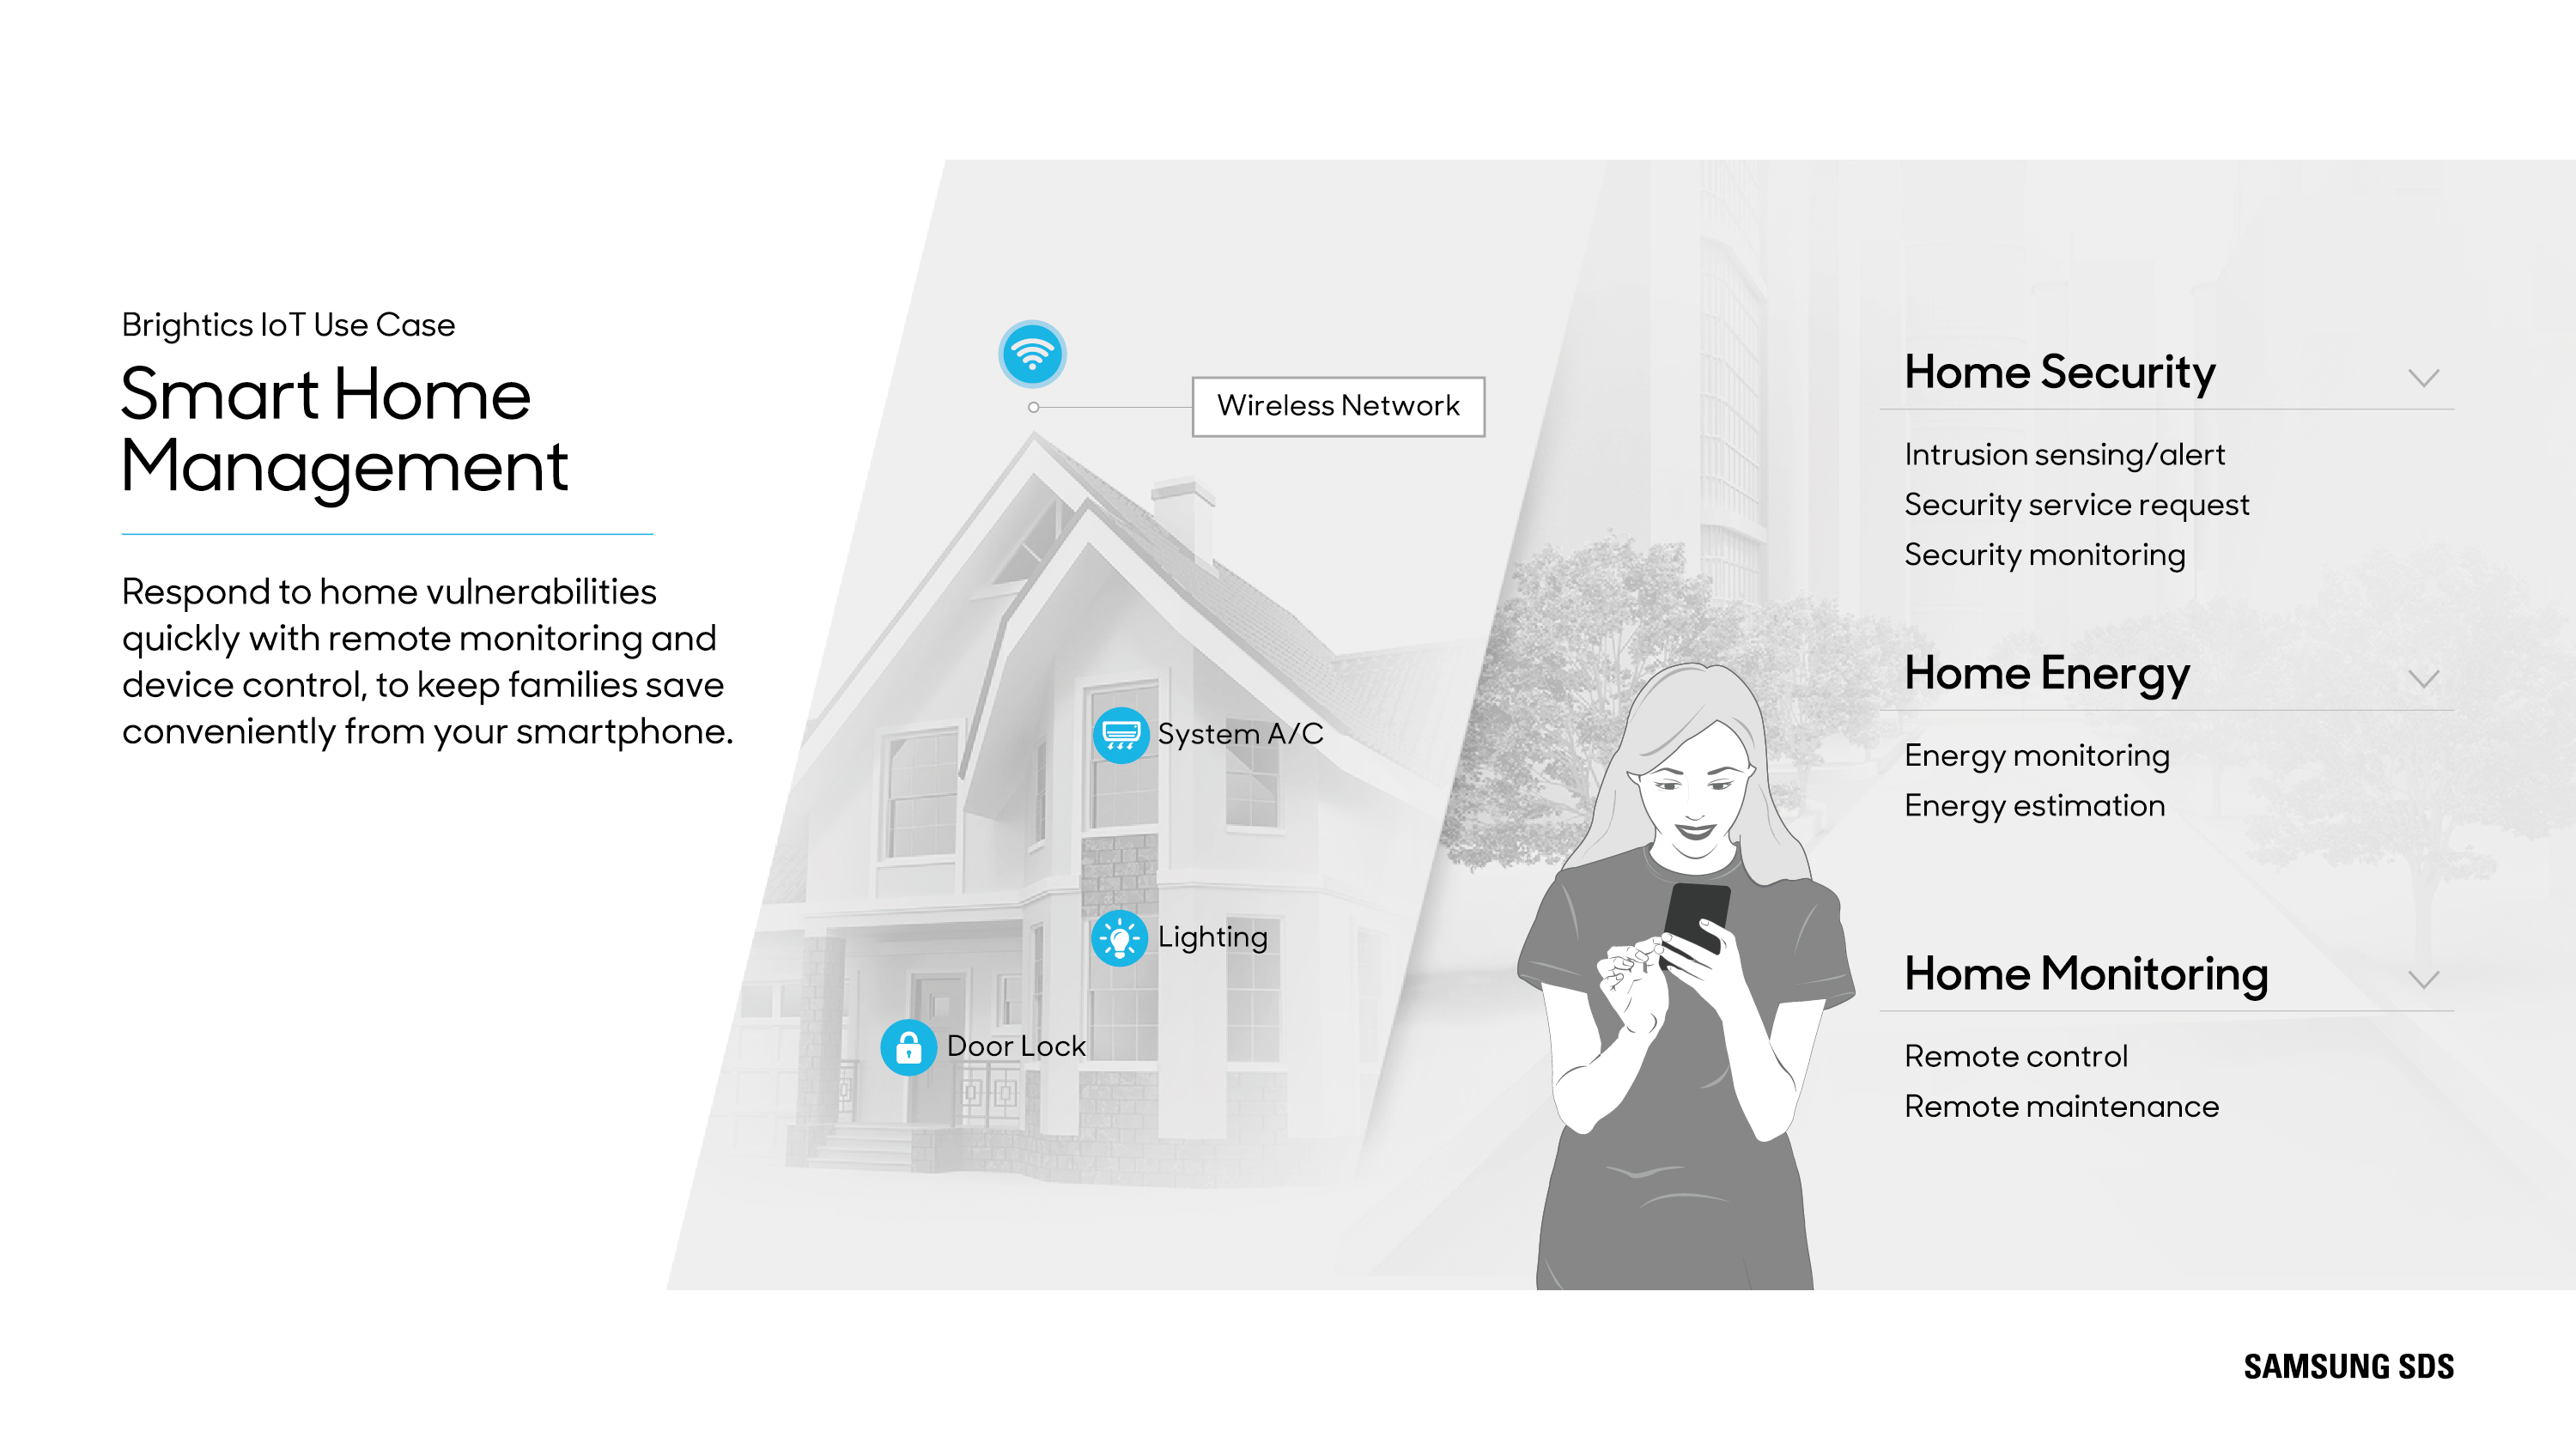 Smart Home Management Platform  Connected IoT devices ranging from door locks, gas valves, smart buttons, and various mobile devices can be managed by Brightics IoT and Brightics. Insator's intelligent platform provides a secure foundation for all IoT connectivity.